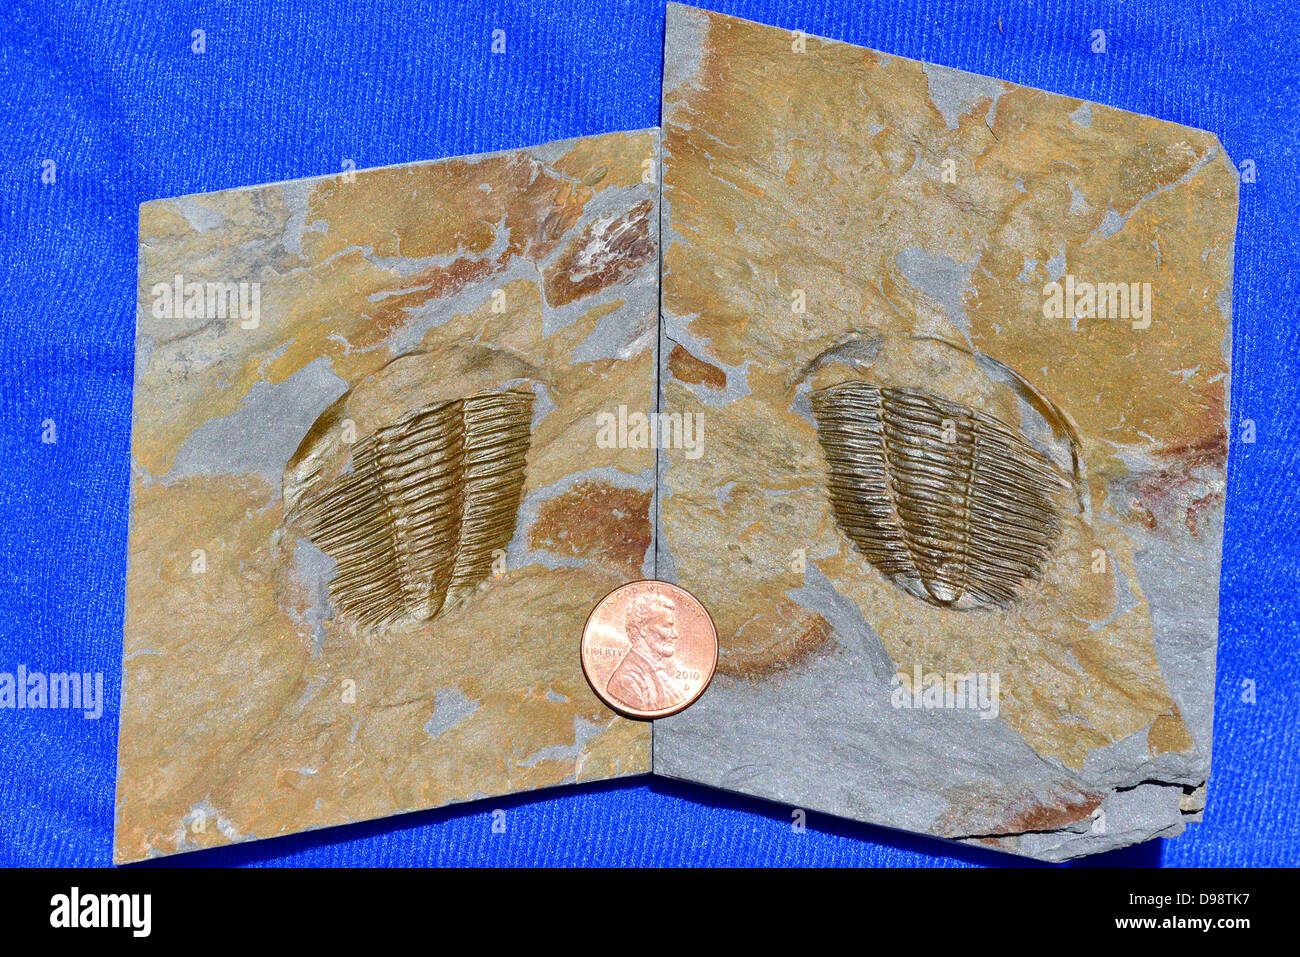 Fossil trilobite Angelina Sedgwickii of Ordovician age, a pair of cast and mold deformed by shear stress. - Stock Image